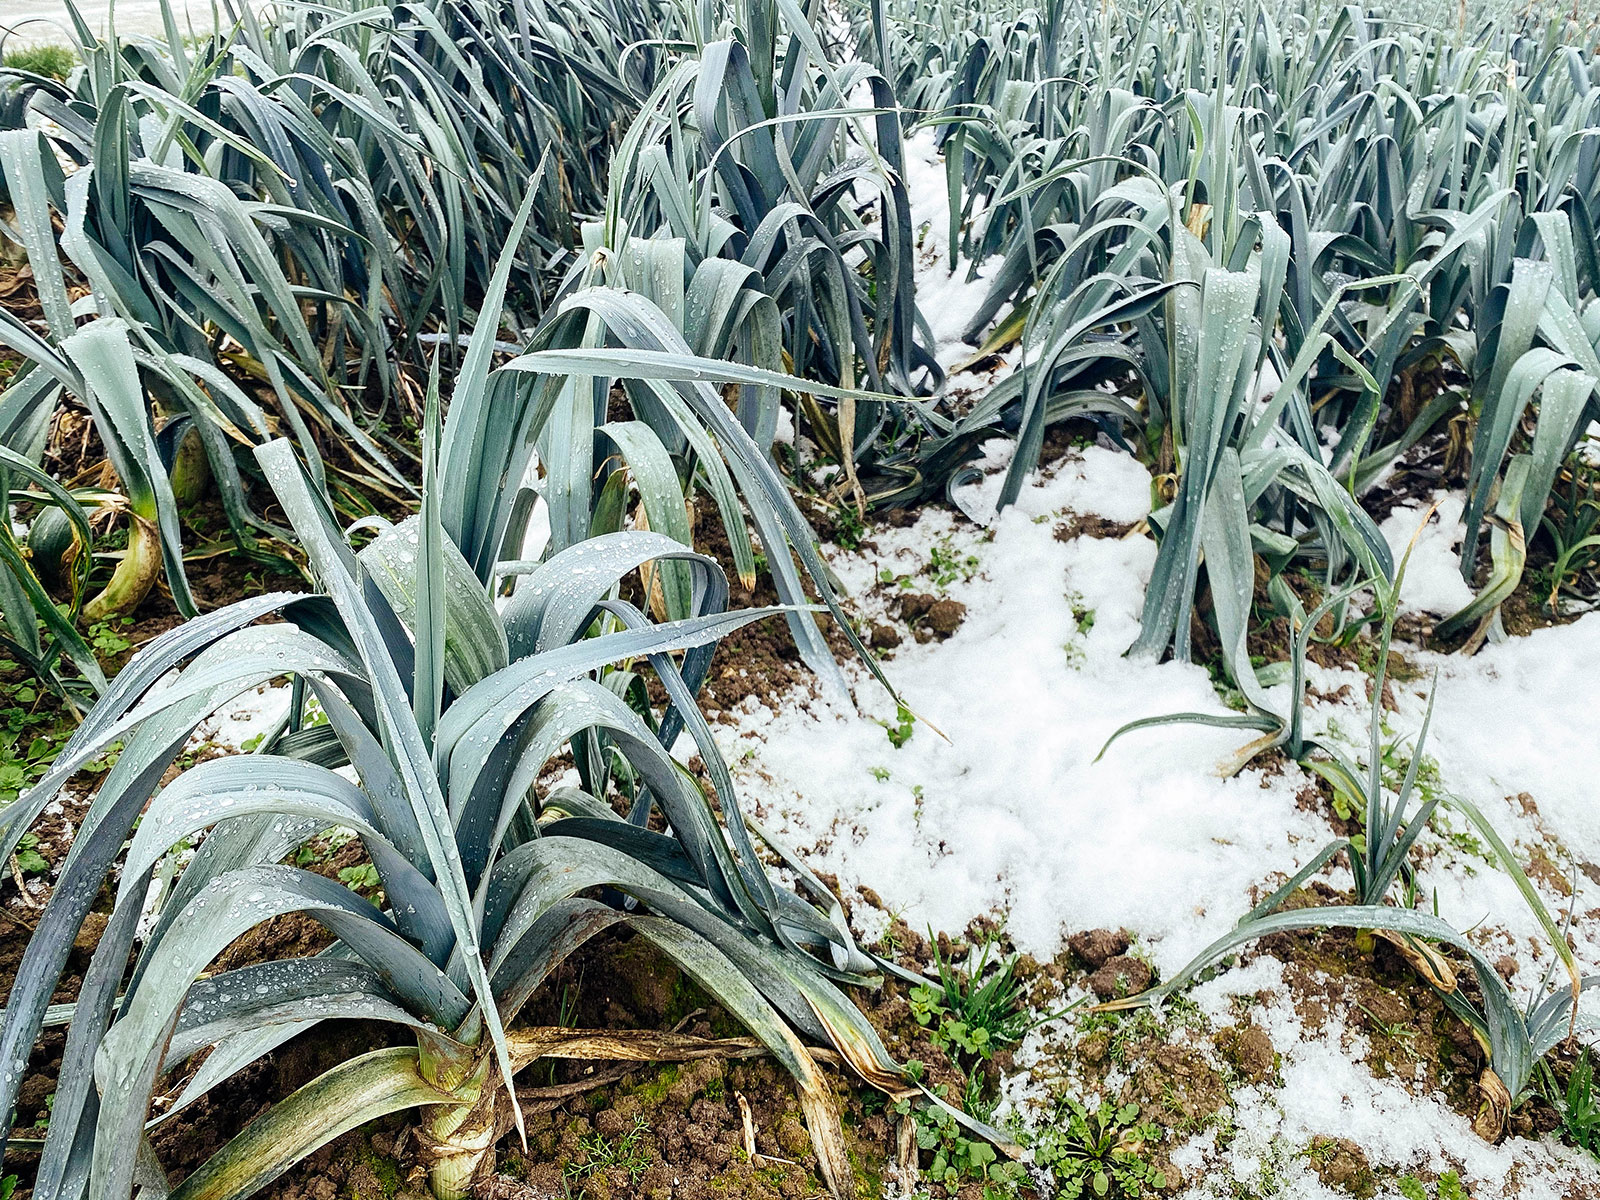 Freeze-resistant leek plants growing in winter with snow on the ground